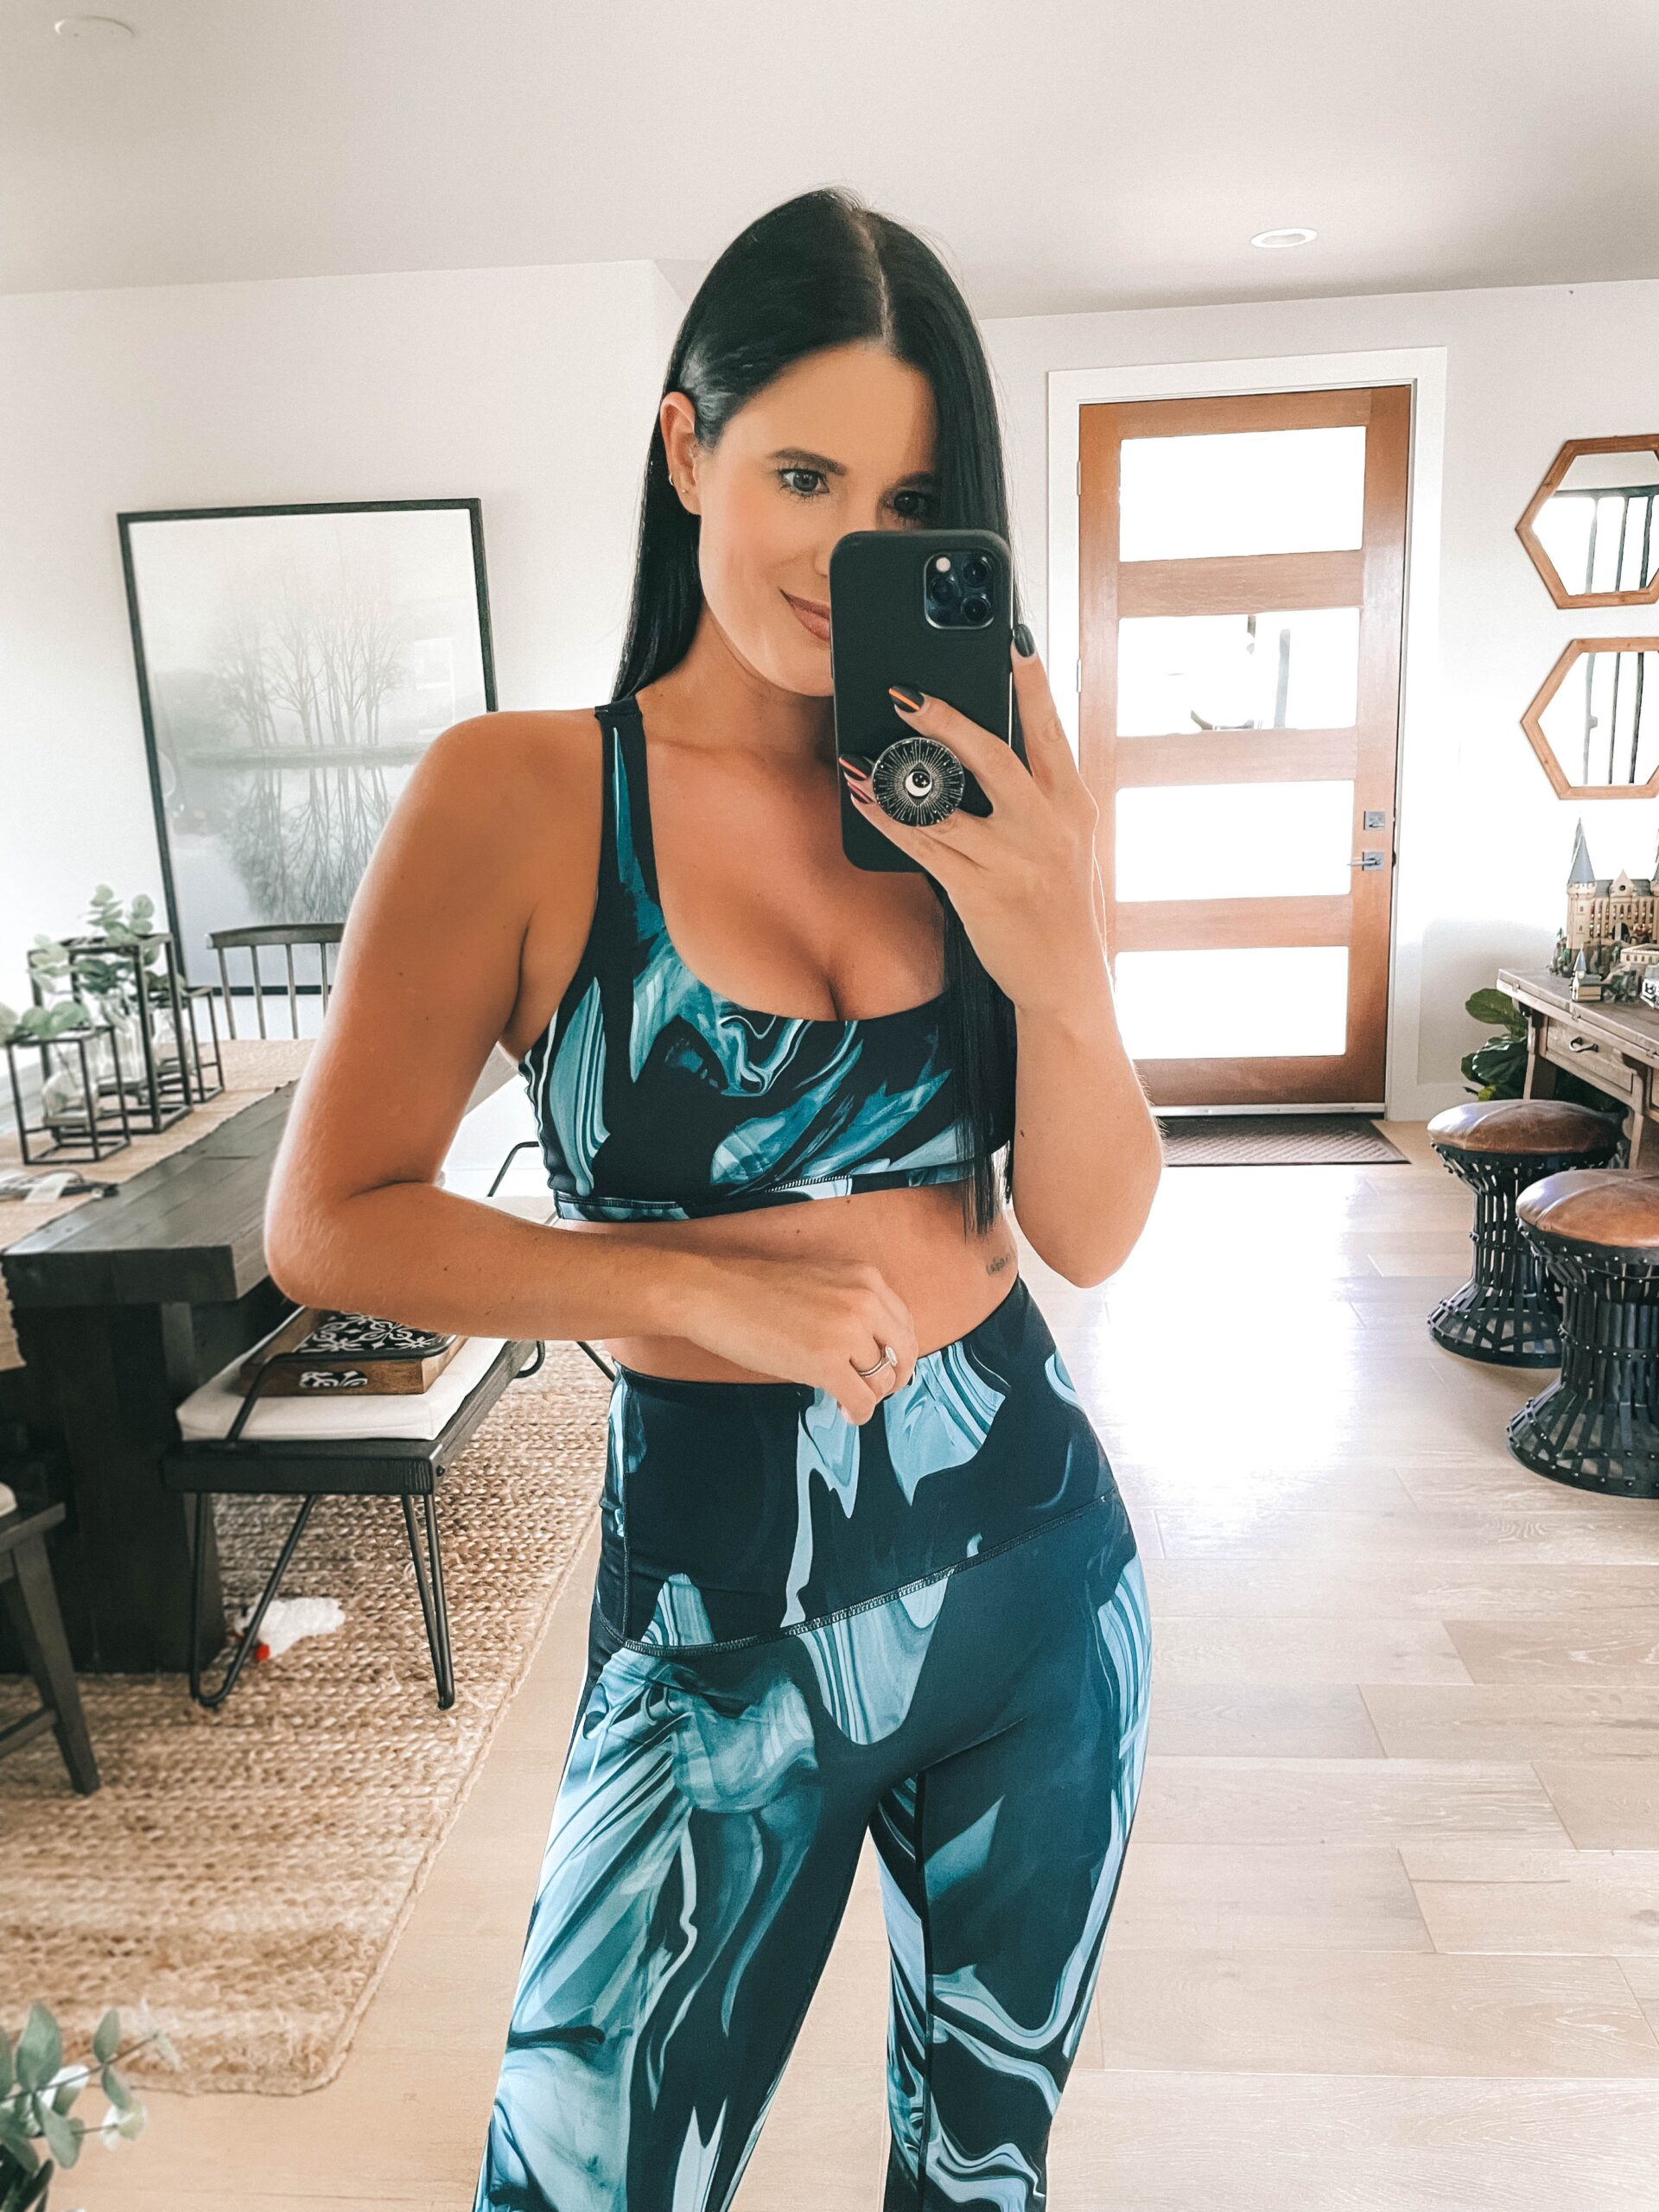 Nordstrom Anniversary Sale by popular Austin fashion blog, Dressed to Kill: image of a woman wearing a blue and black sports bra and matching blue and black leggings.